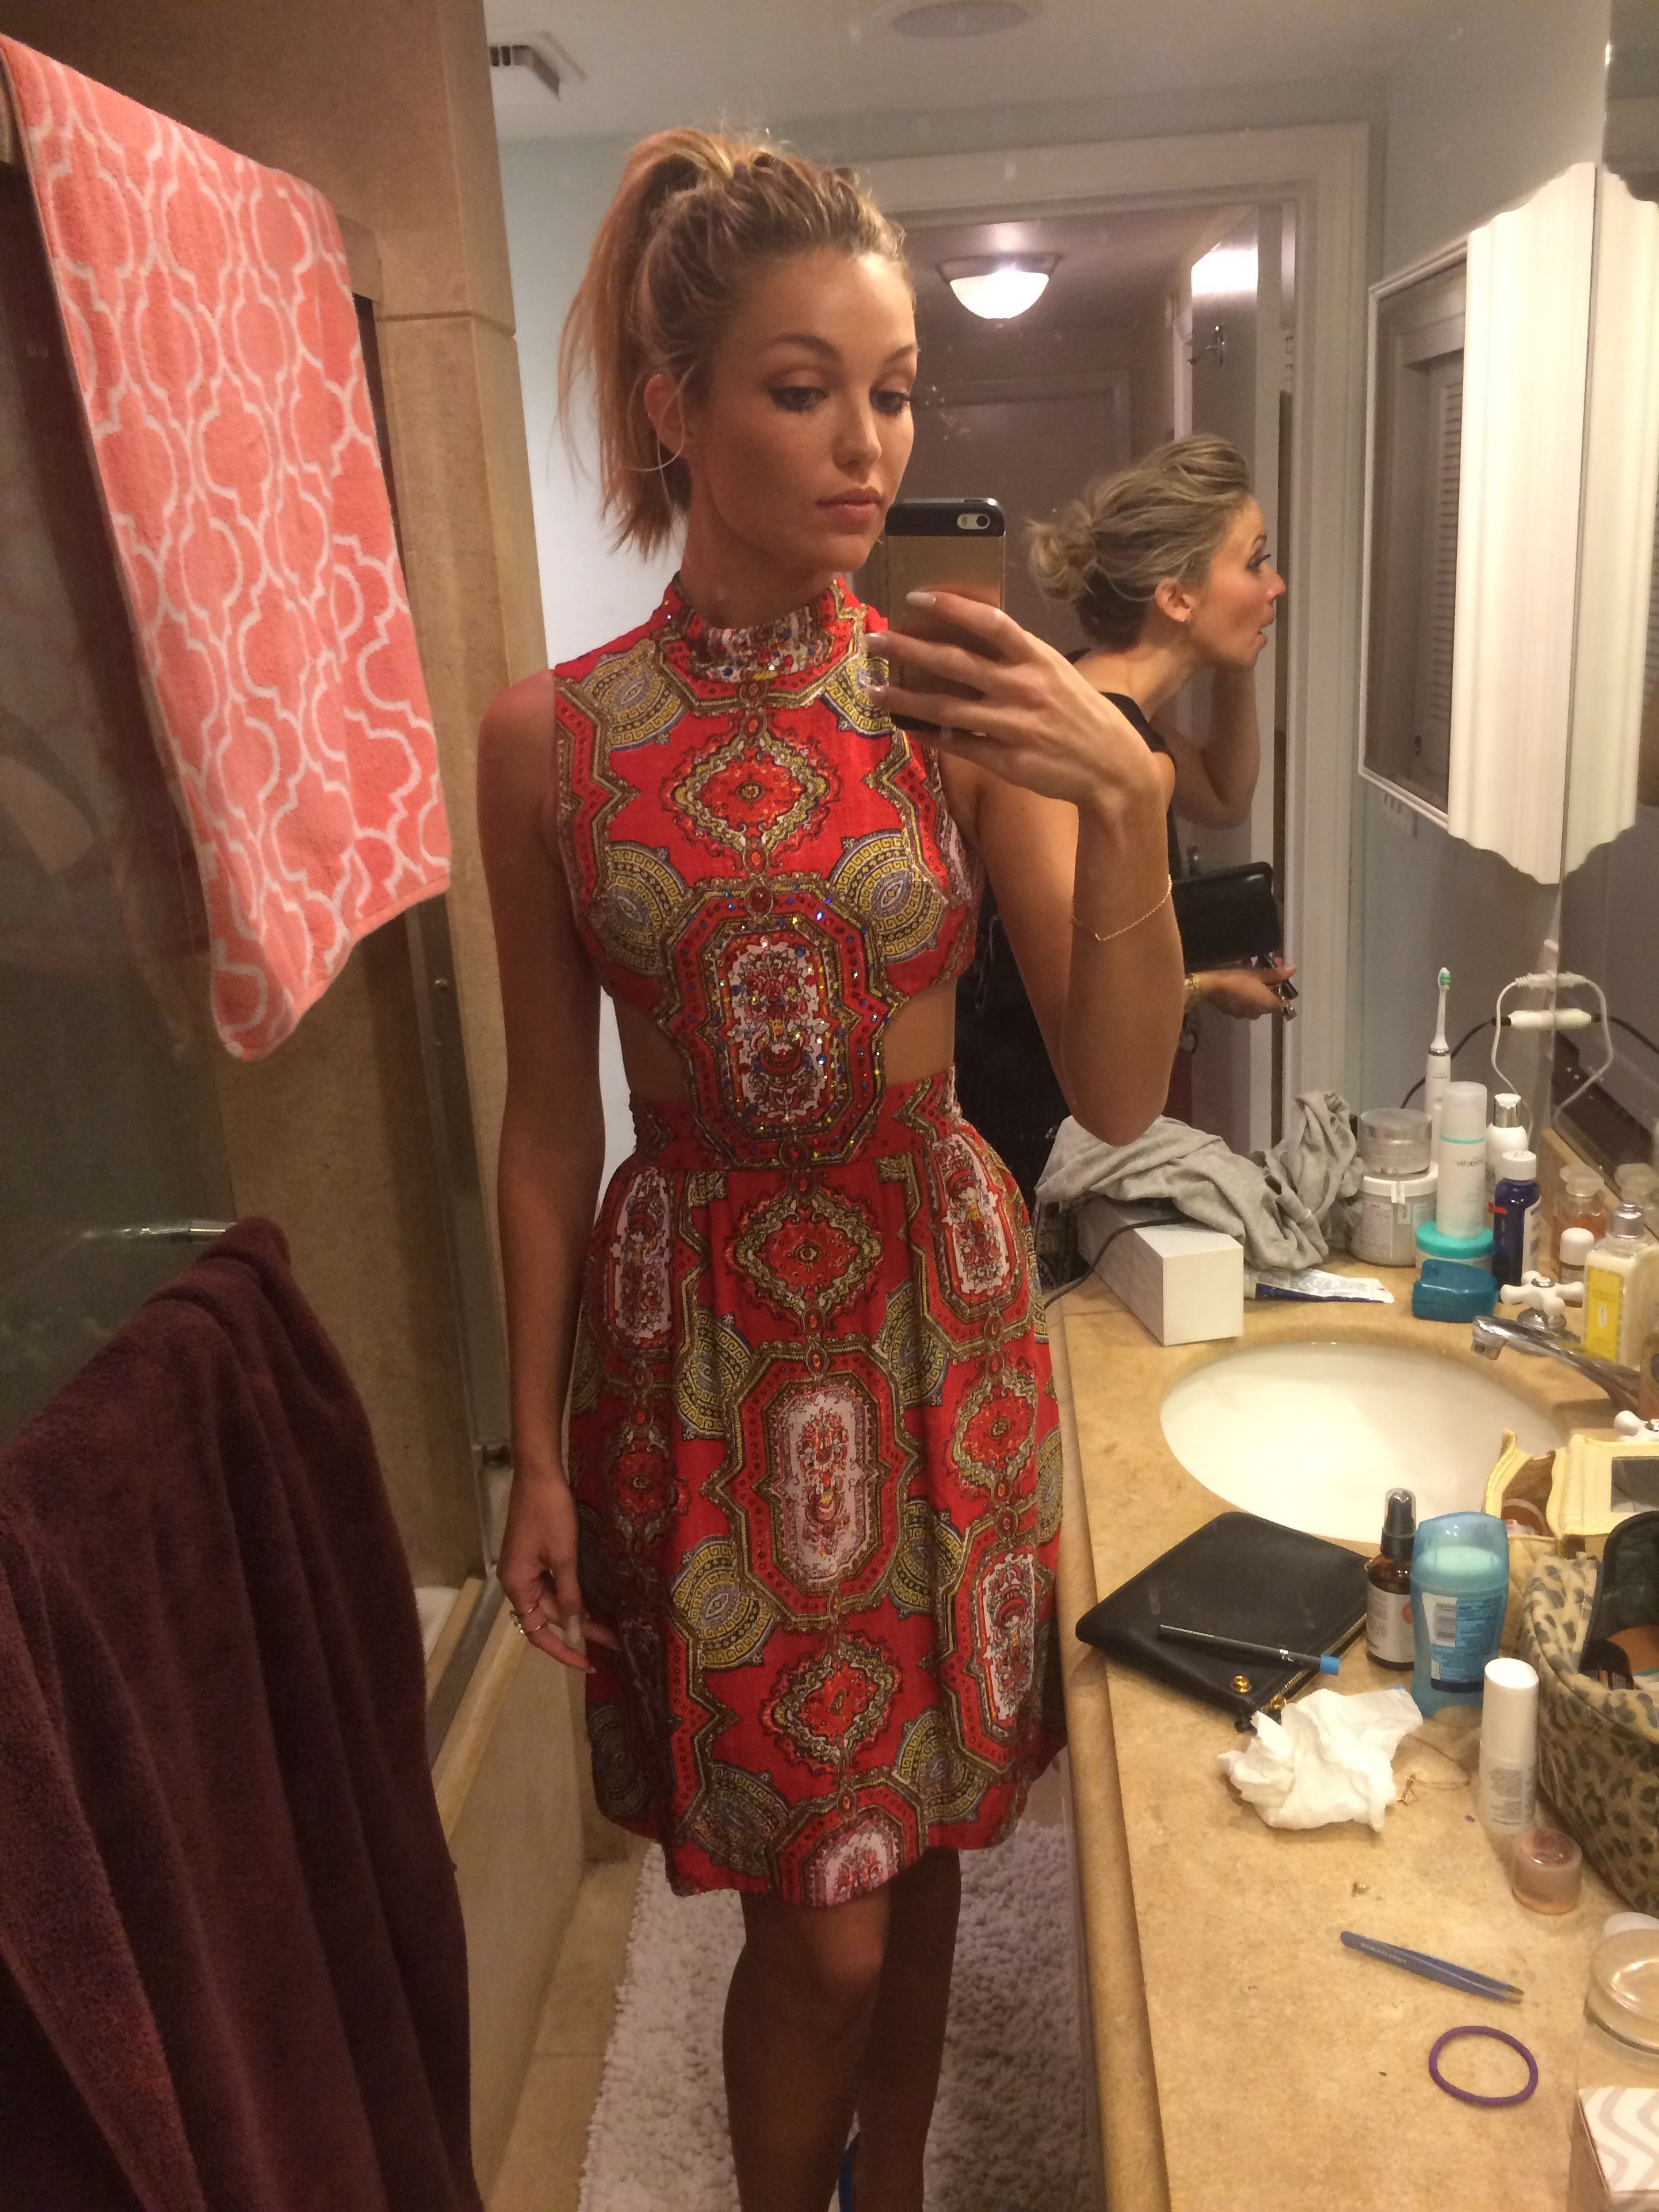 Lili-Simmons-Leaked-44-thefappening.nu_c4771.jpg